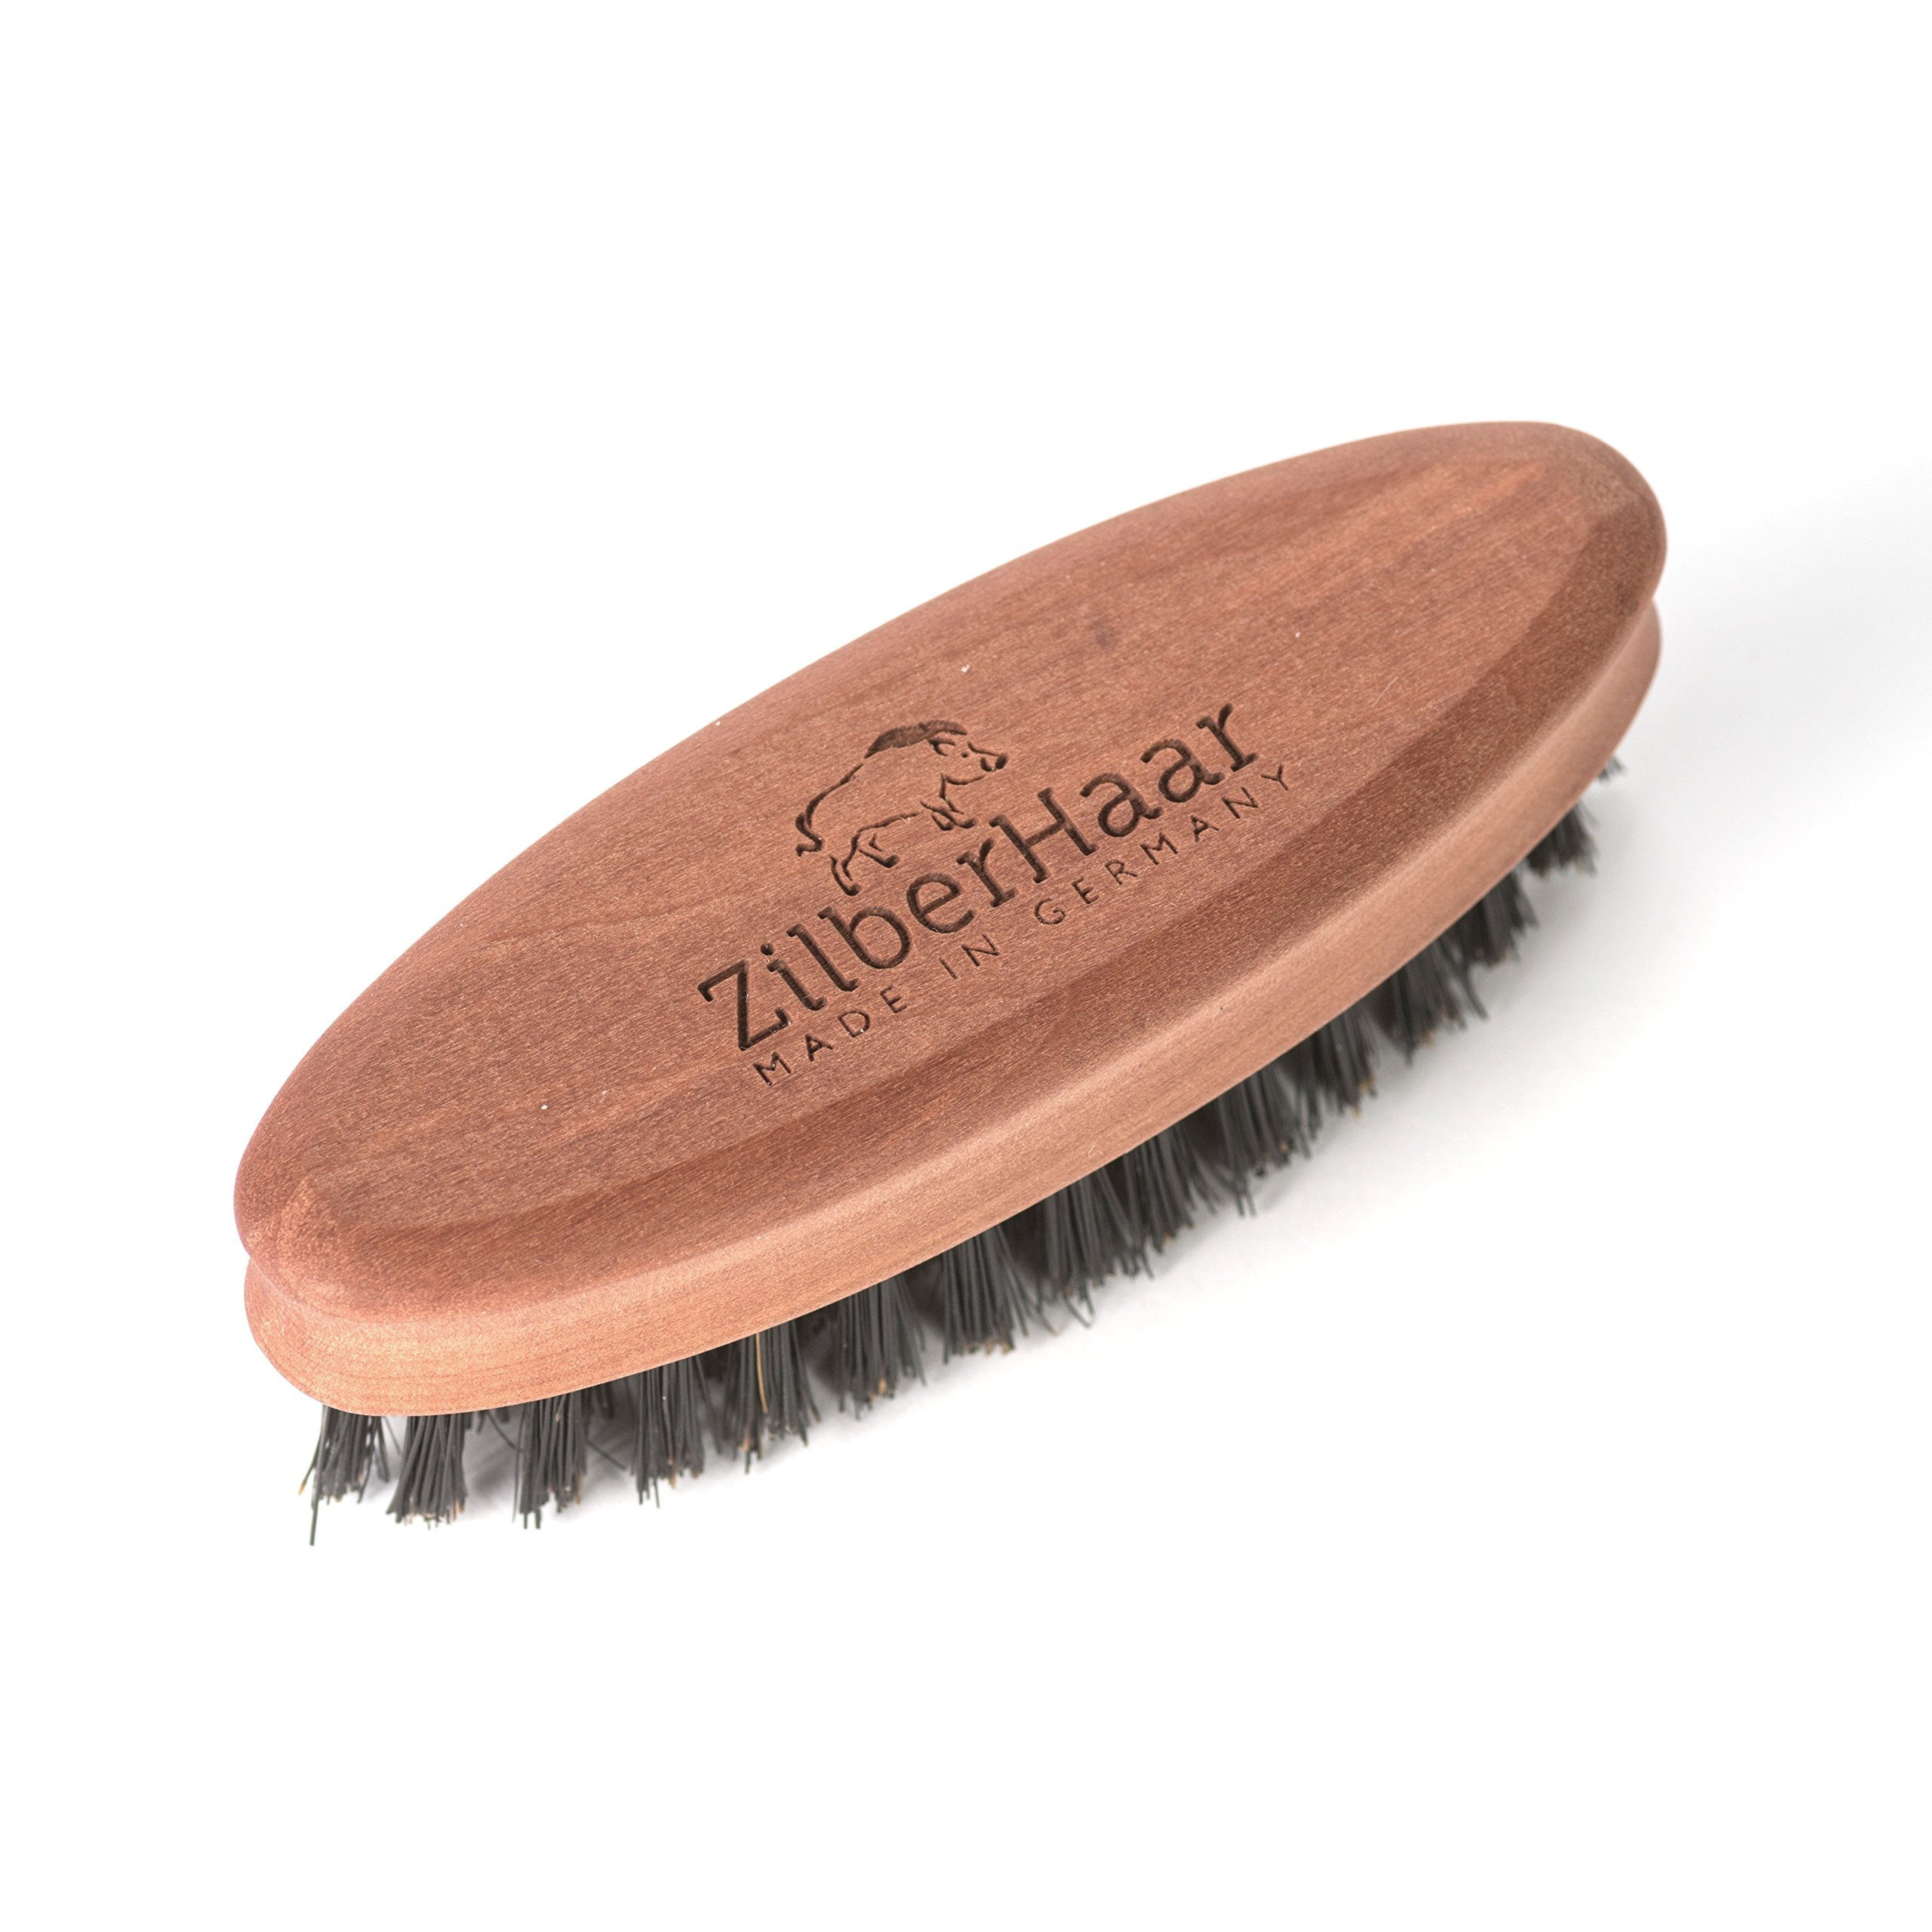 ZilberHaar Soft Pocket Beard Brush – 100% Boar Bristles with Firm Natural Hair – Best Beard and Skin Care for Men and Beard Grooming – Pocket Size and Travel Friendly – German Quality